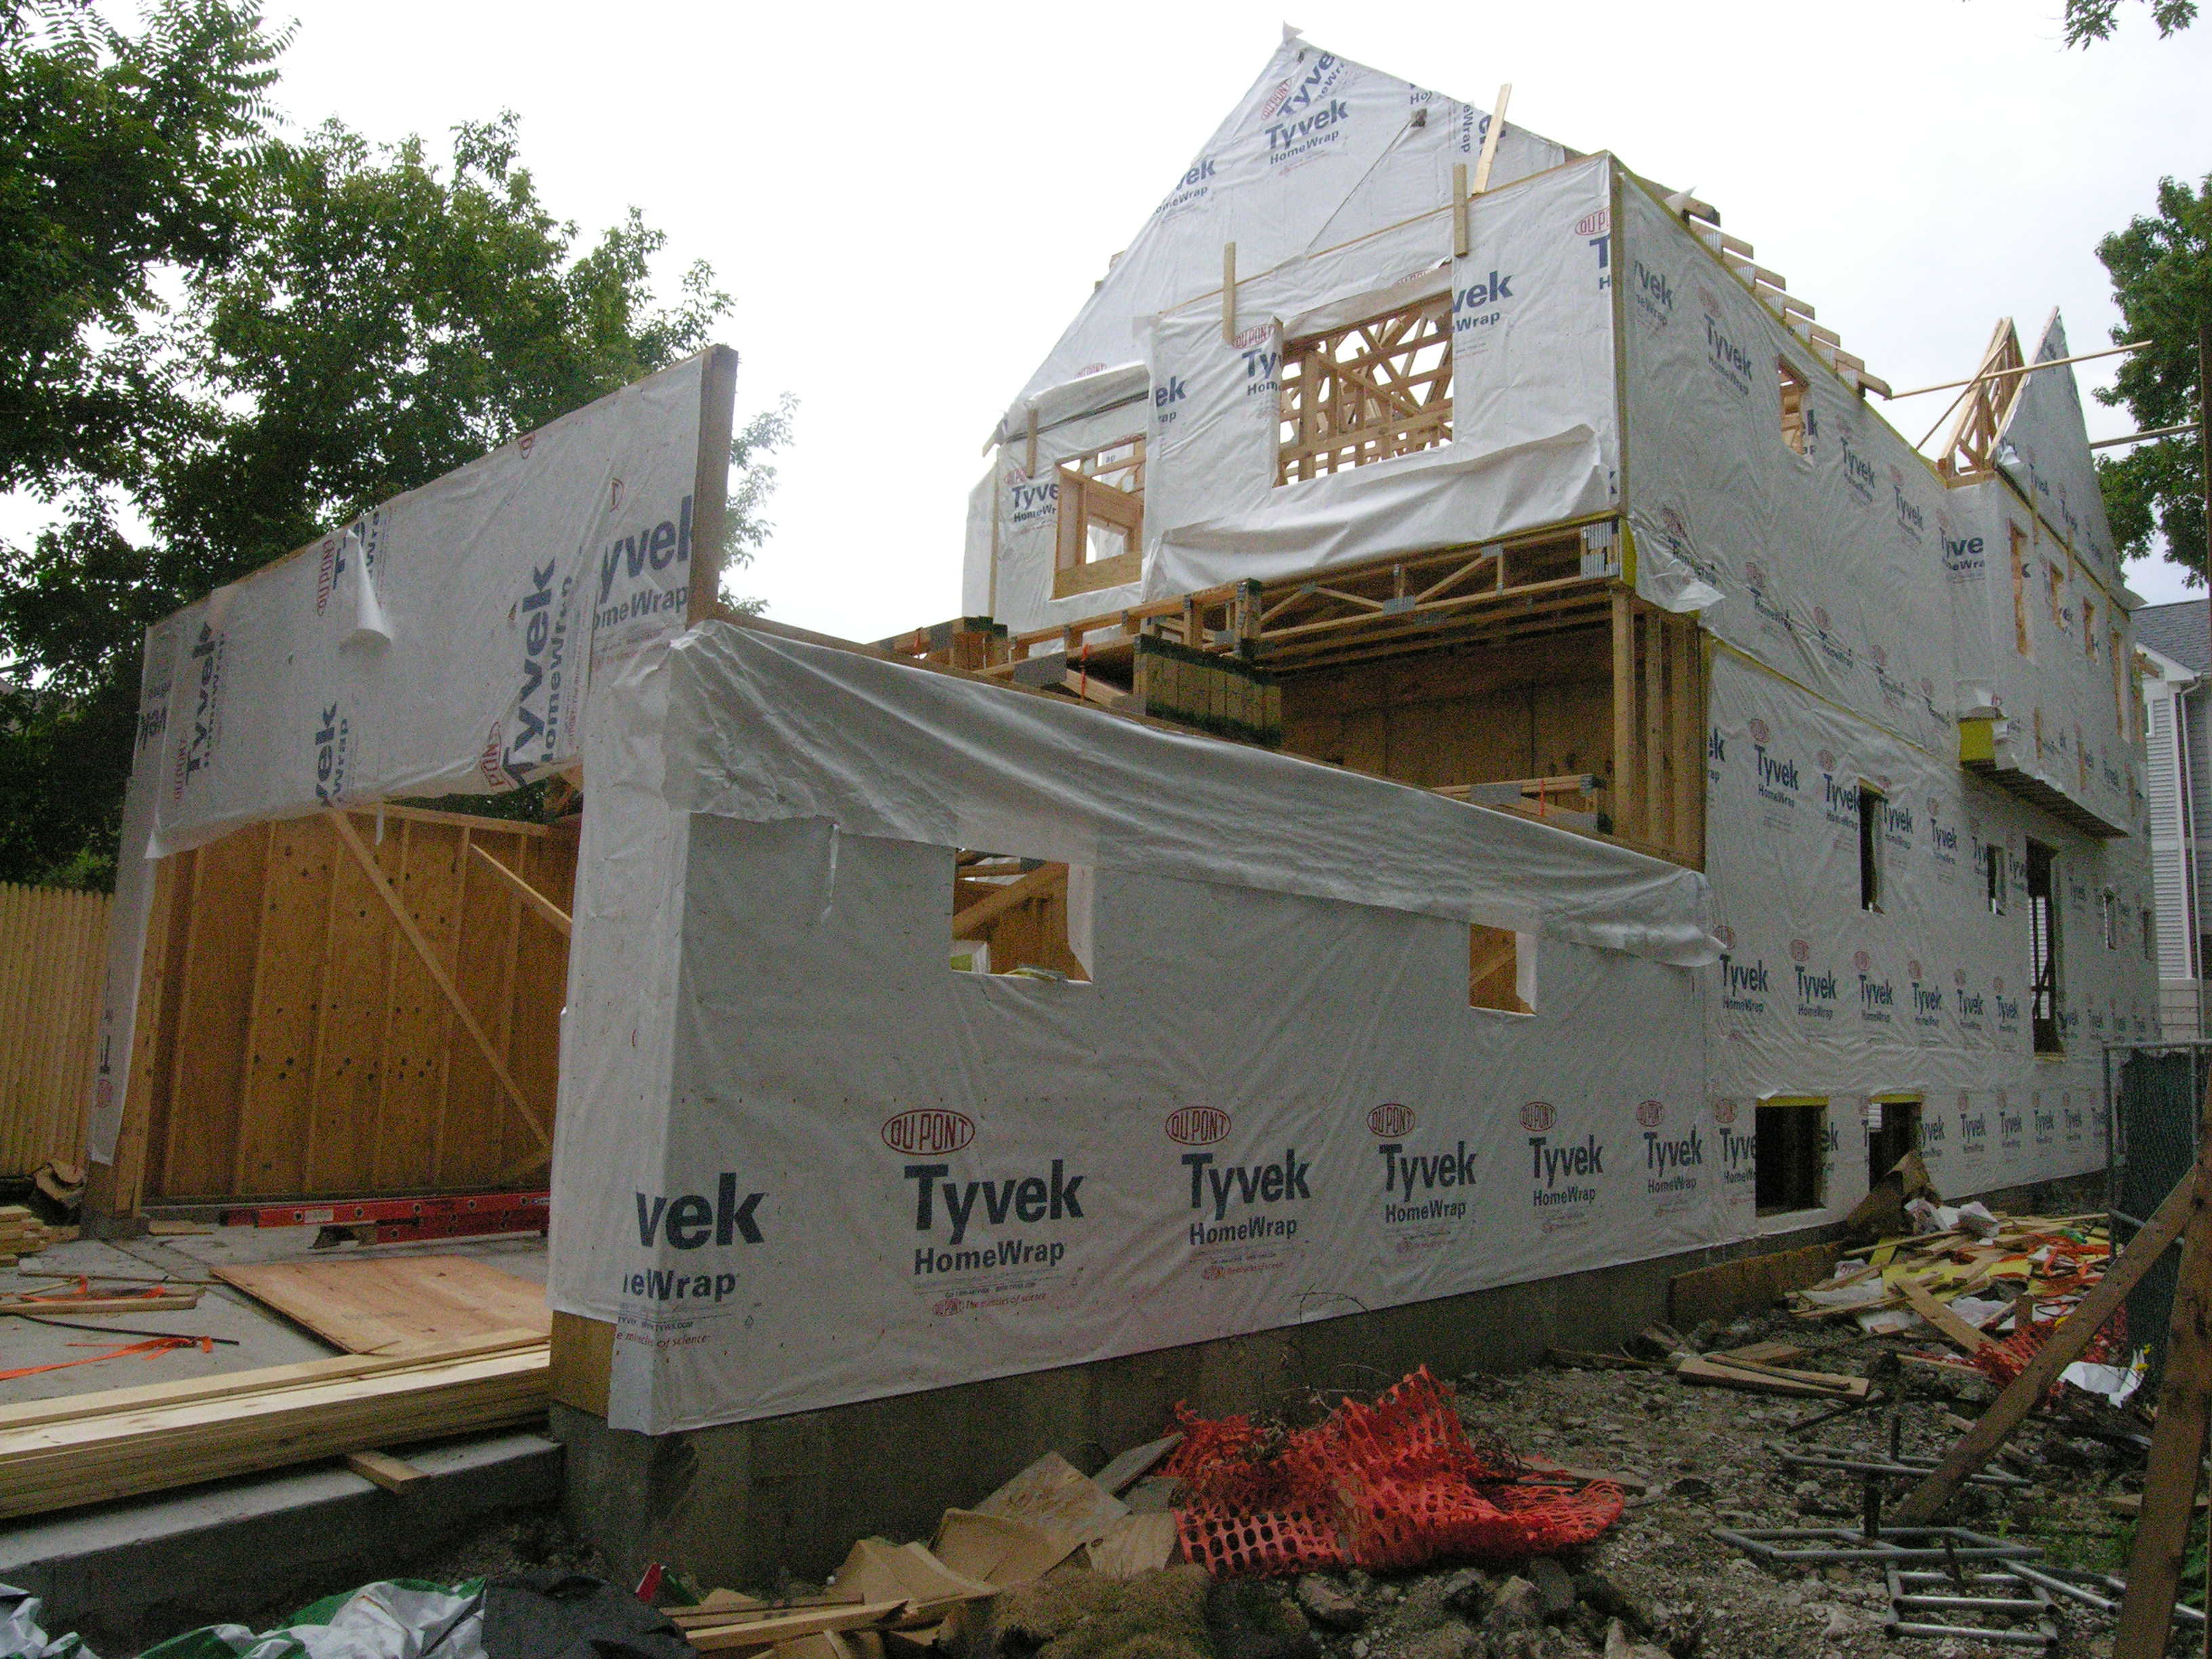 Construction update: The Village Homes